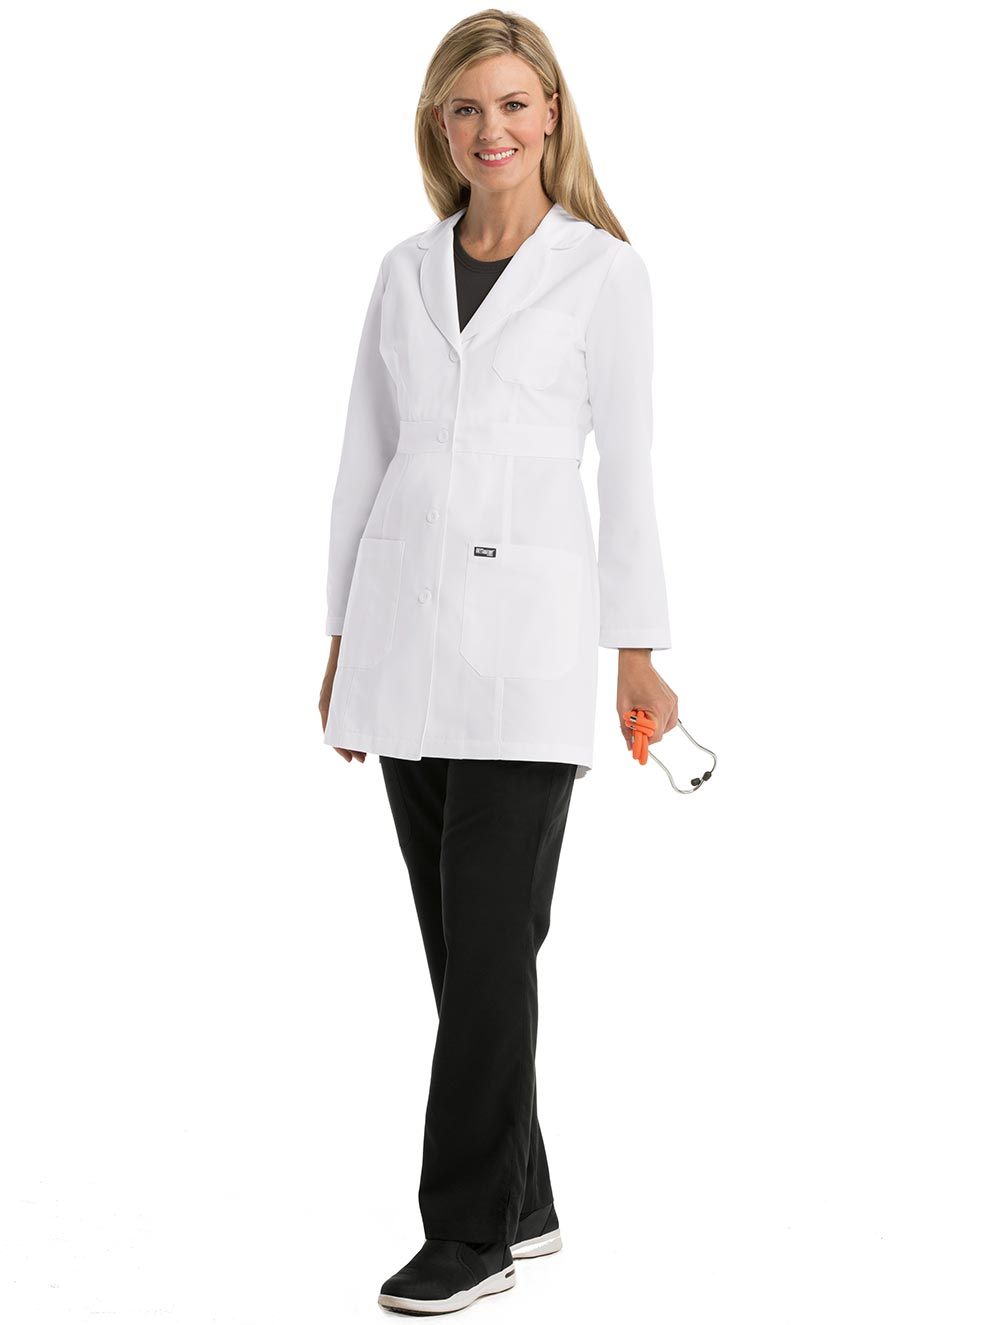 'Grey's Anatomy' Women's Princess Seamed Lab Coat